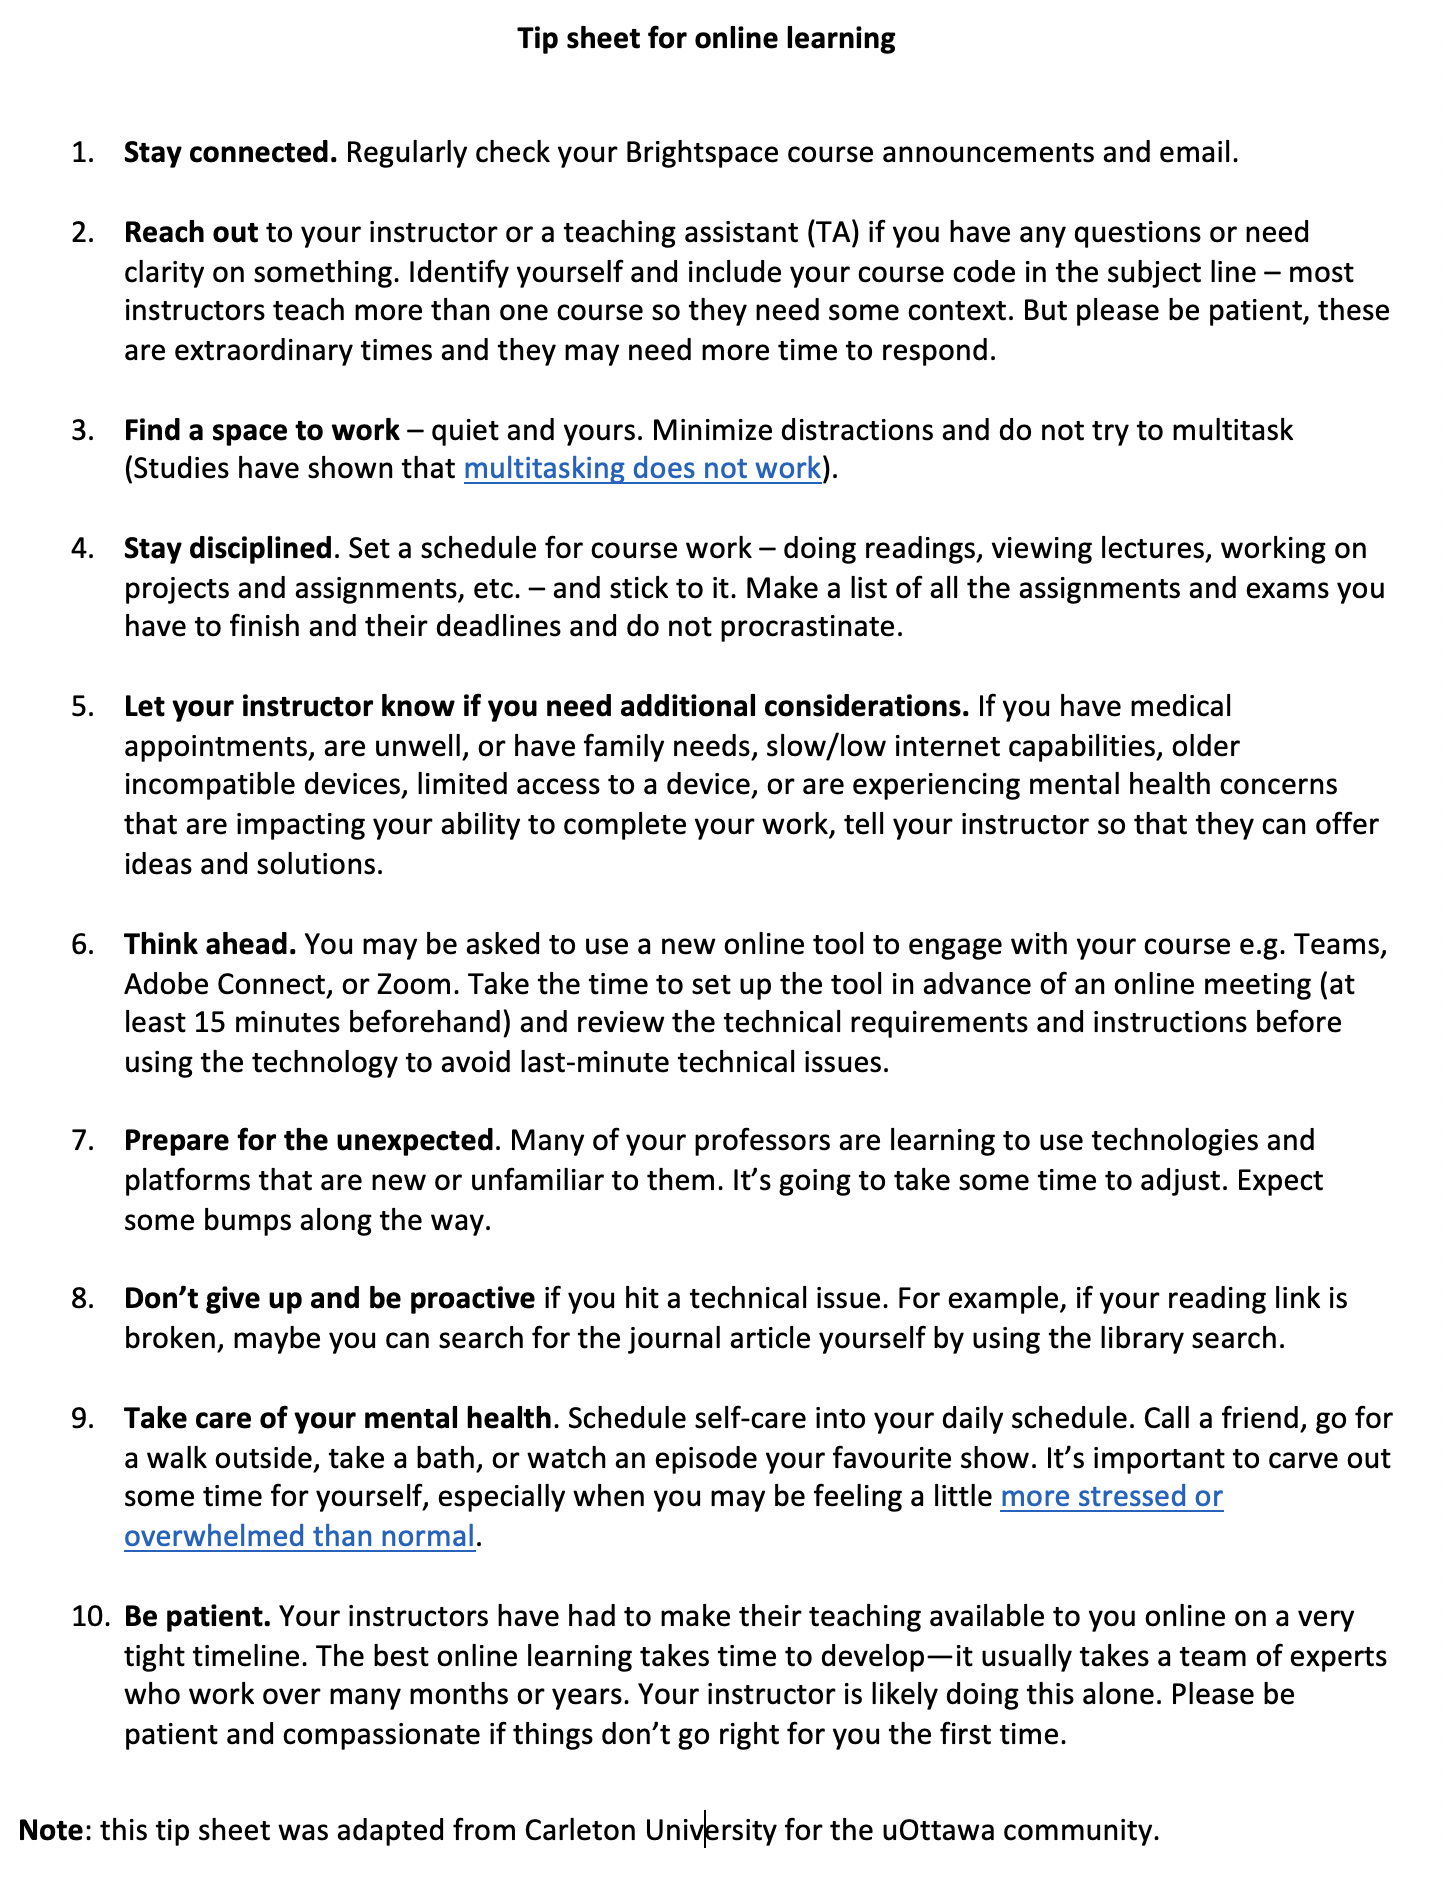 Tip sheet for working online